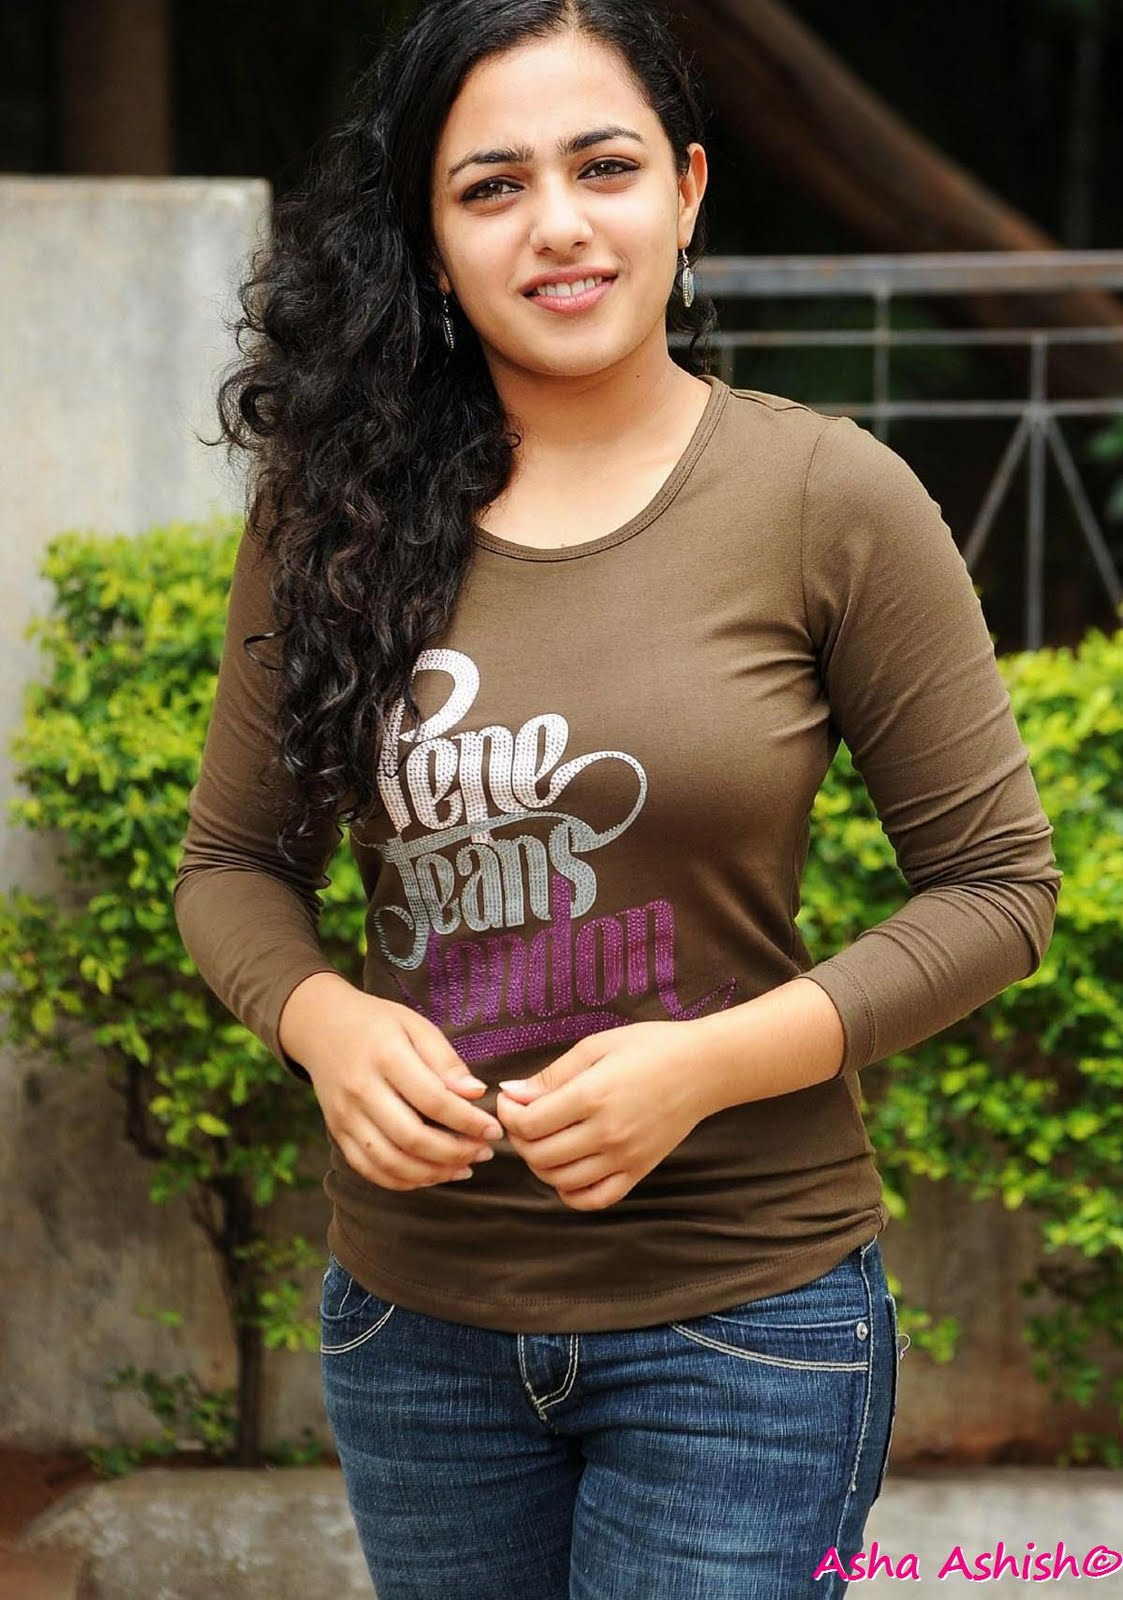 Malayalam Actress Nithya Menon in Top and Jeans HQ Gallery